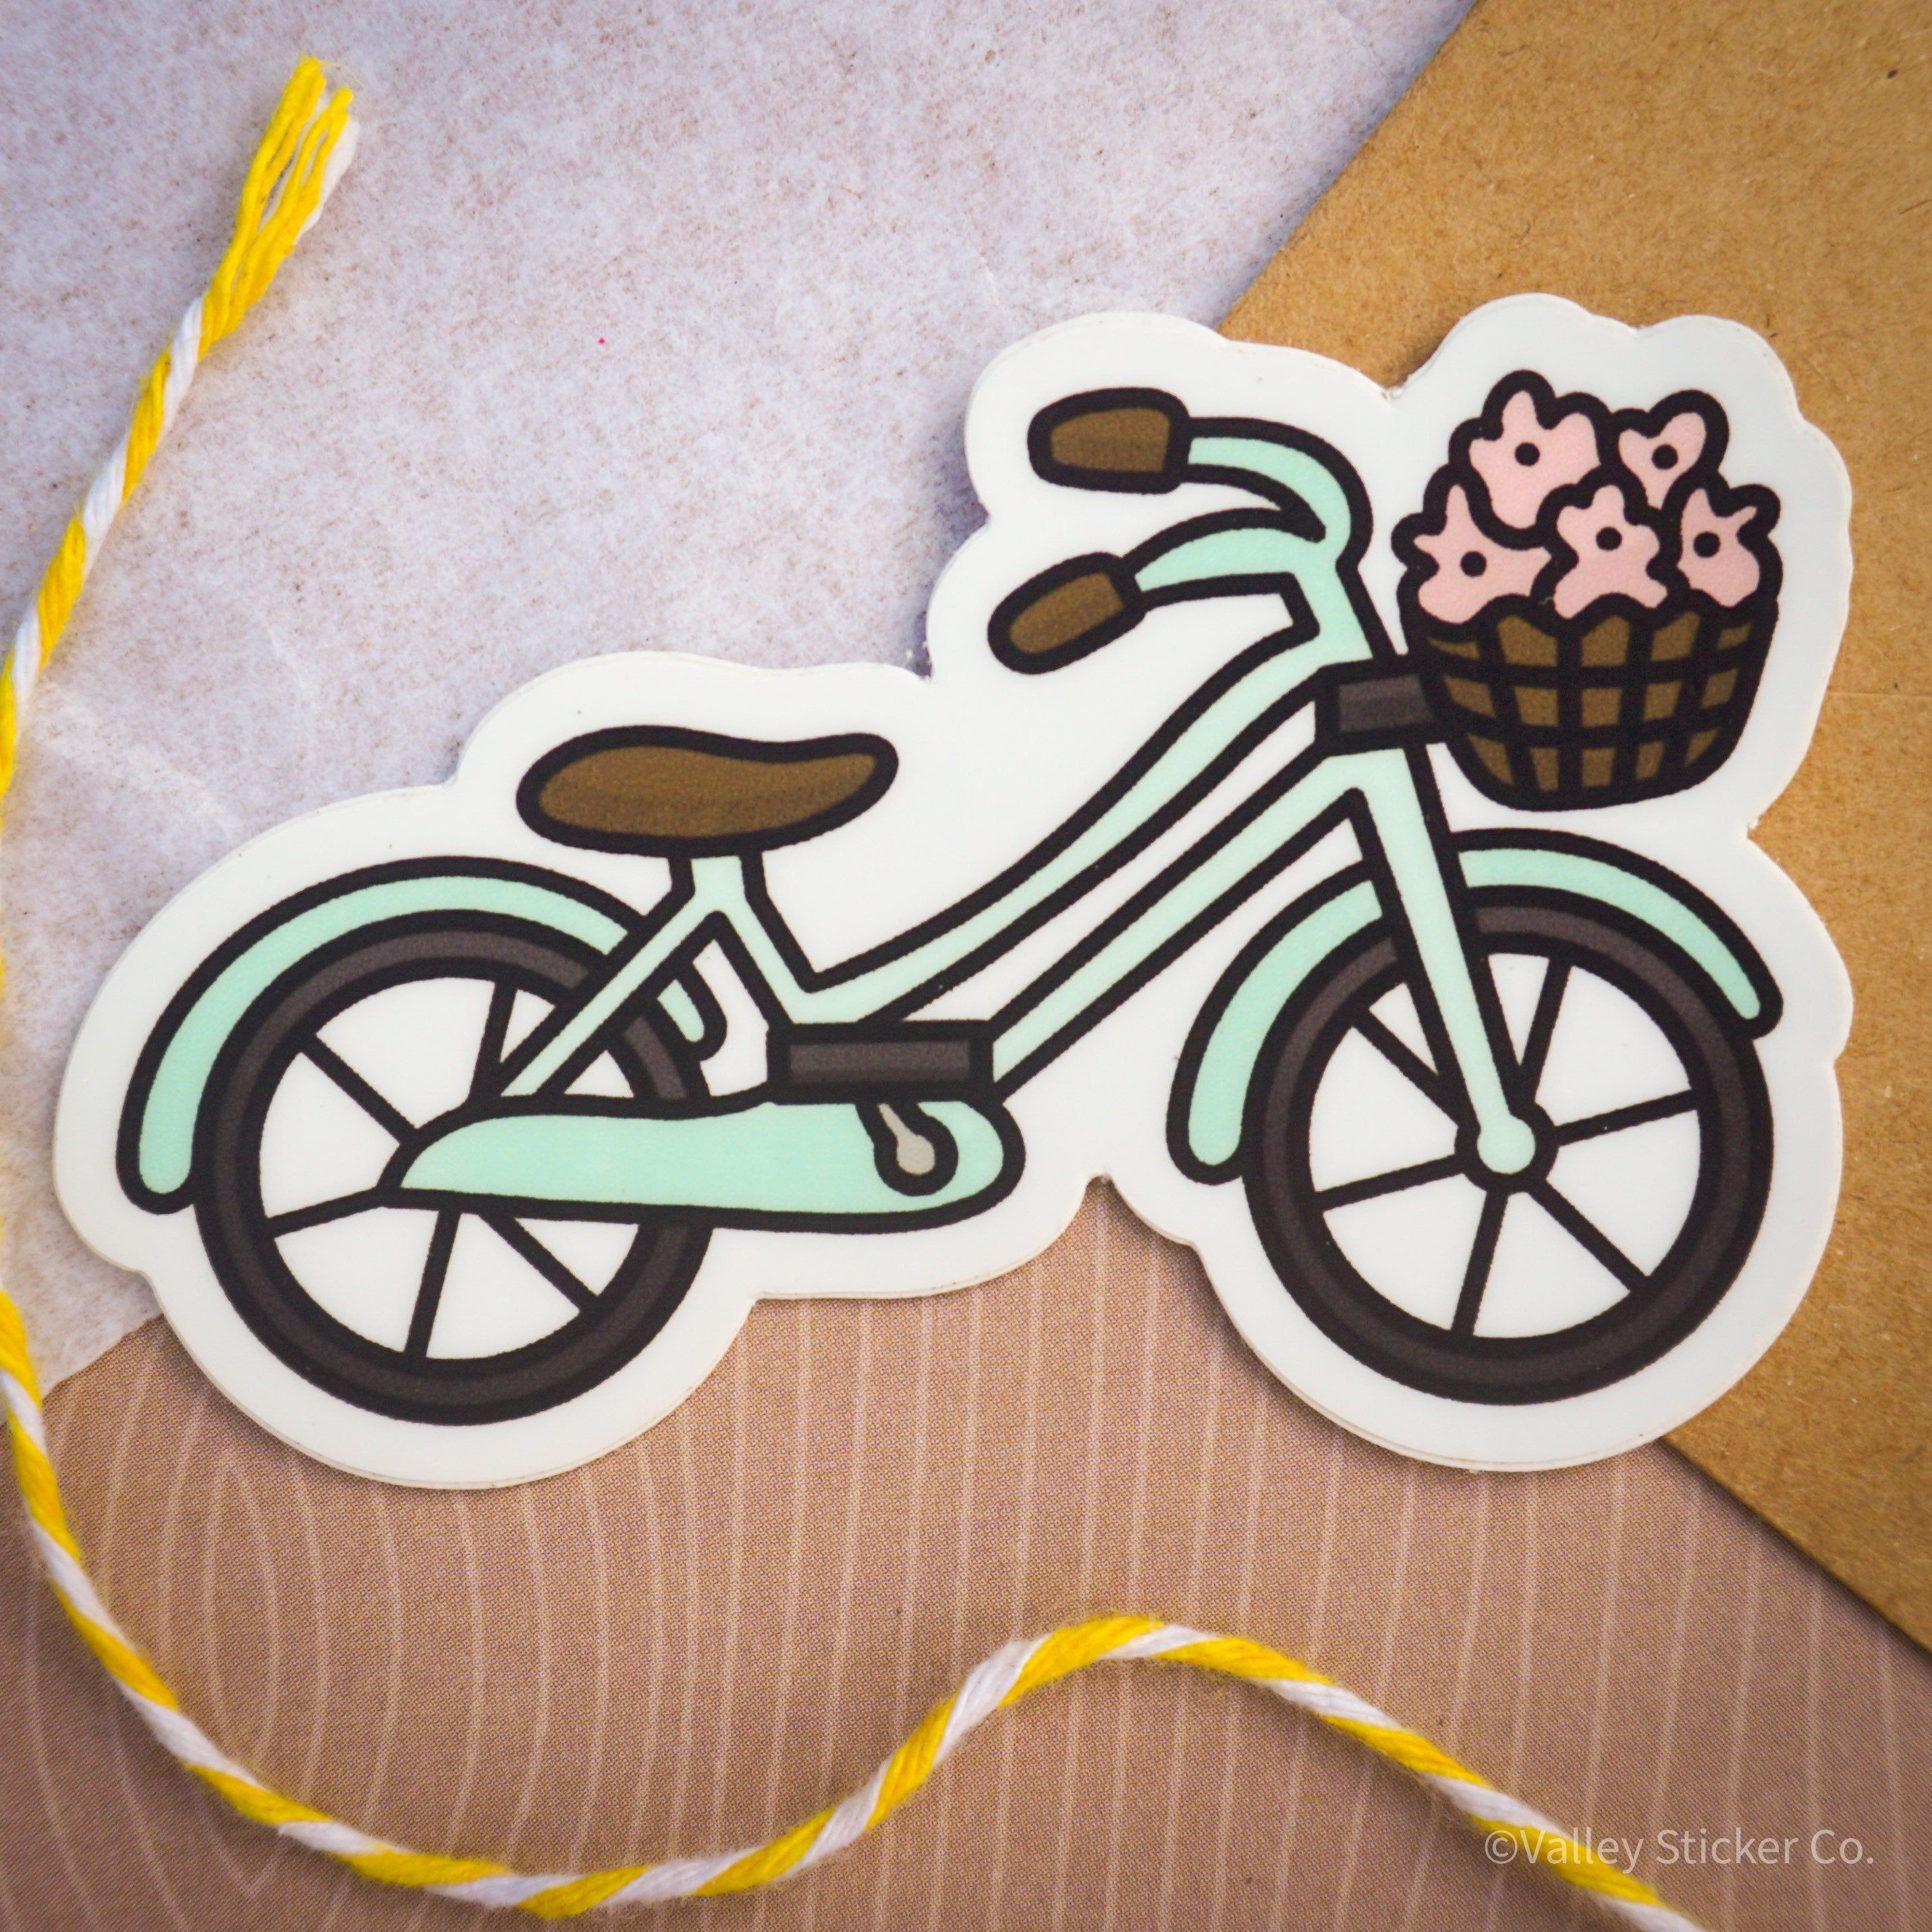 Cute Bike Vinyl Sticker Etsy In 2020 Vinyl Sticker Travel Stickers Cute Stickers